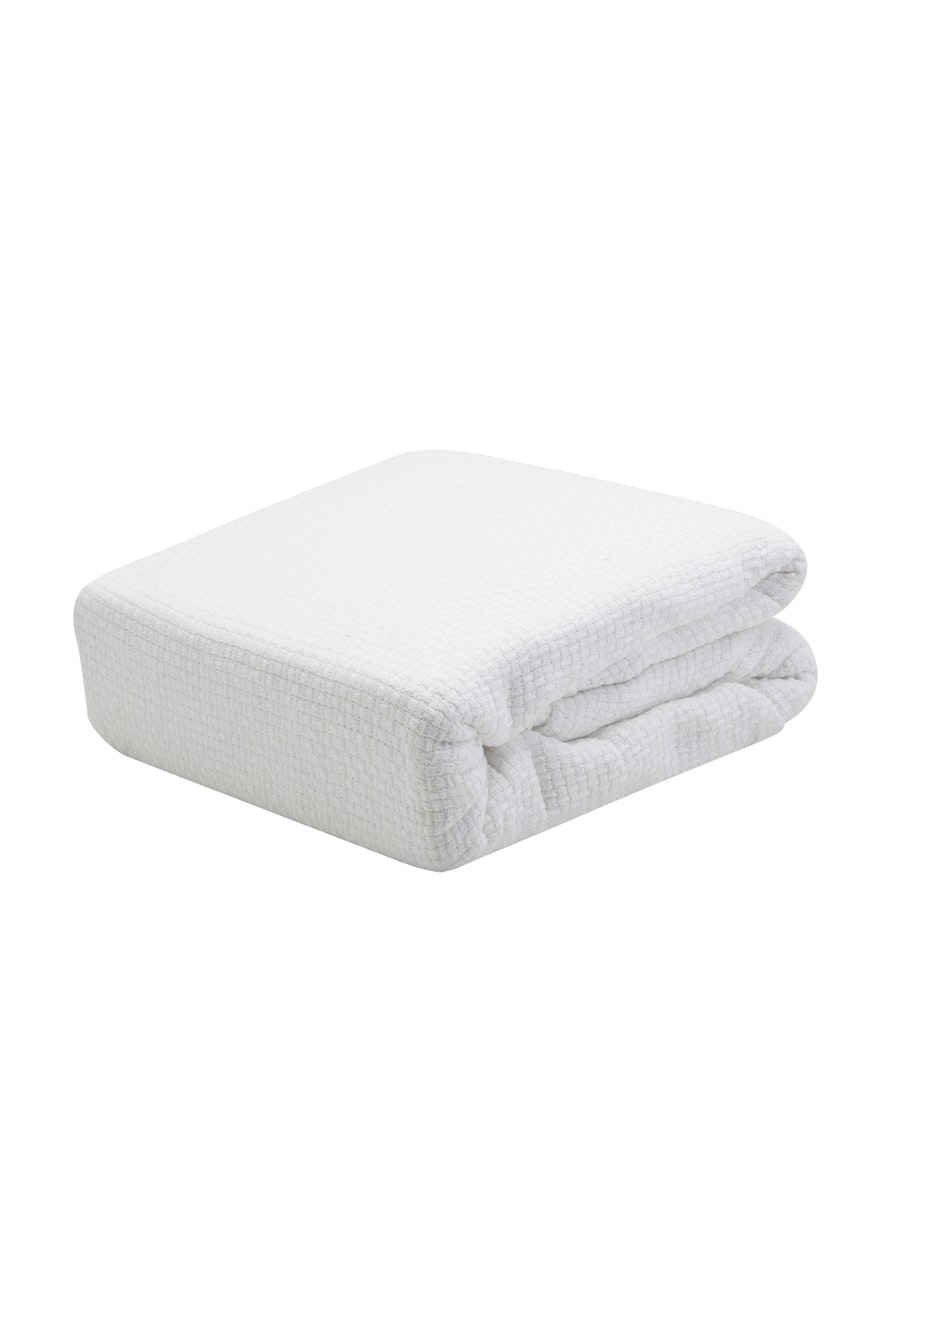 Pebble Weave Cotton Blanket - White - Single Bed